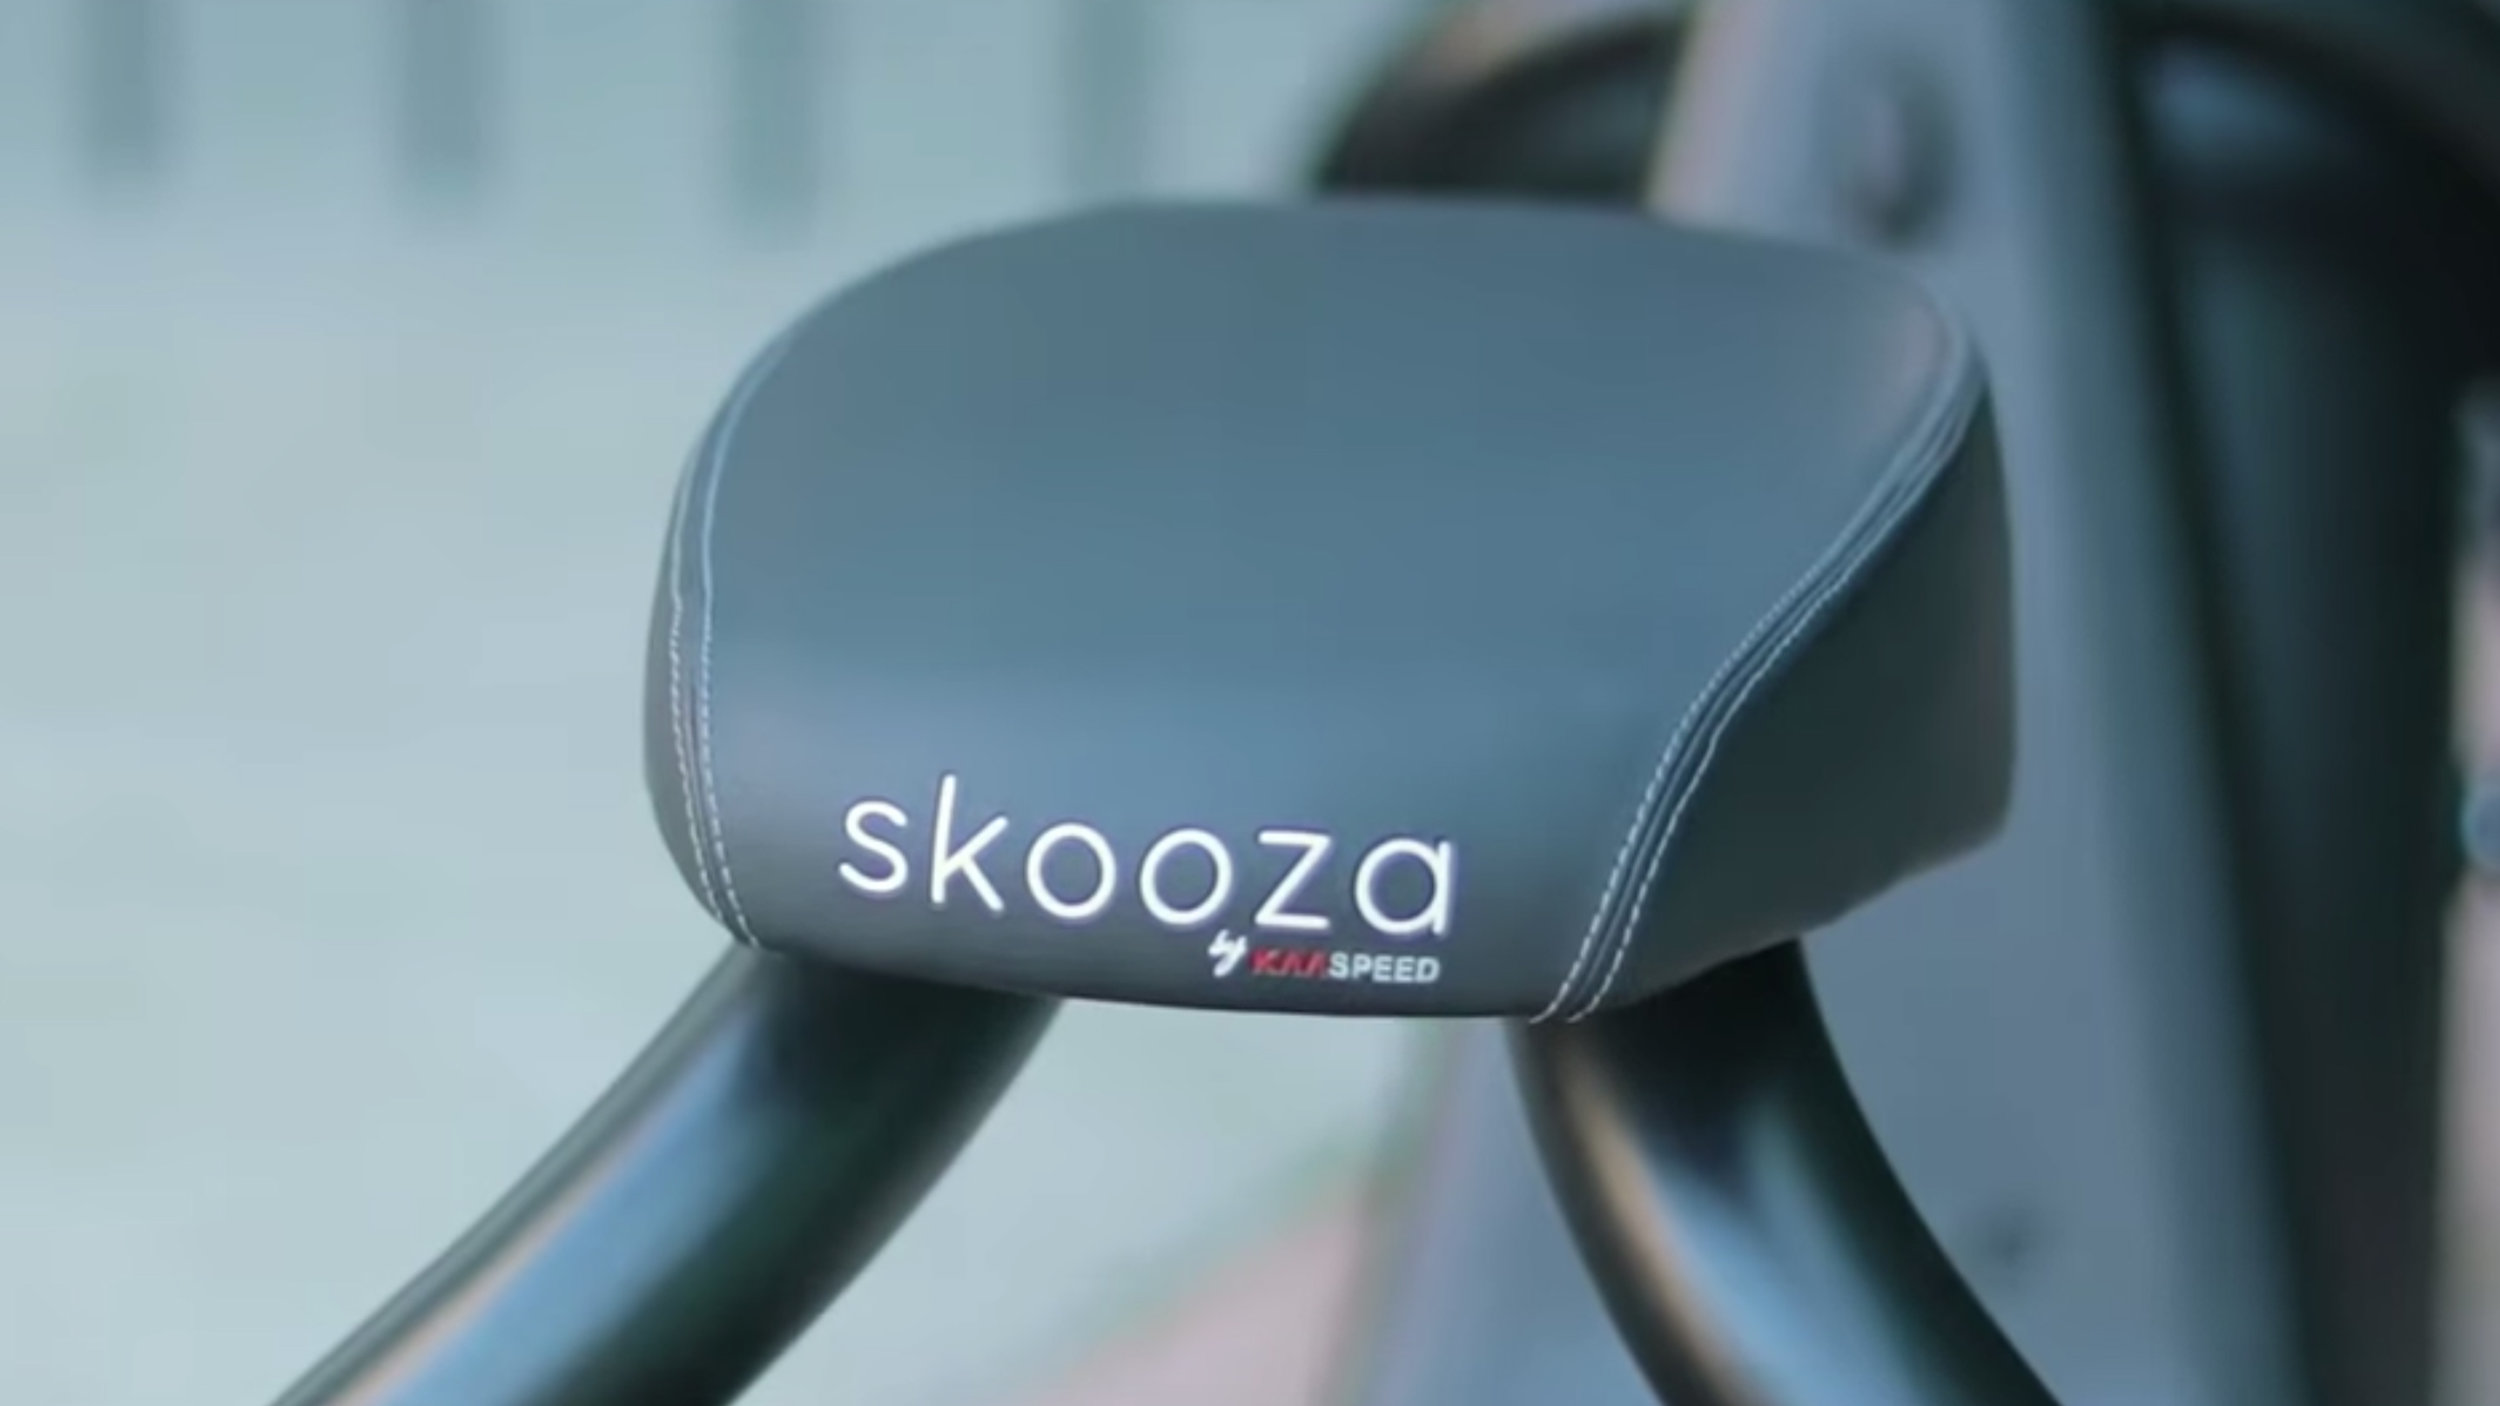 electrified-reviews-skooza-k1s-fat-tire-electric-scooter-review-saddle.jpg